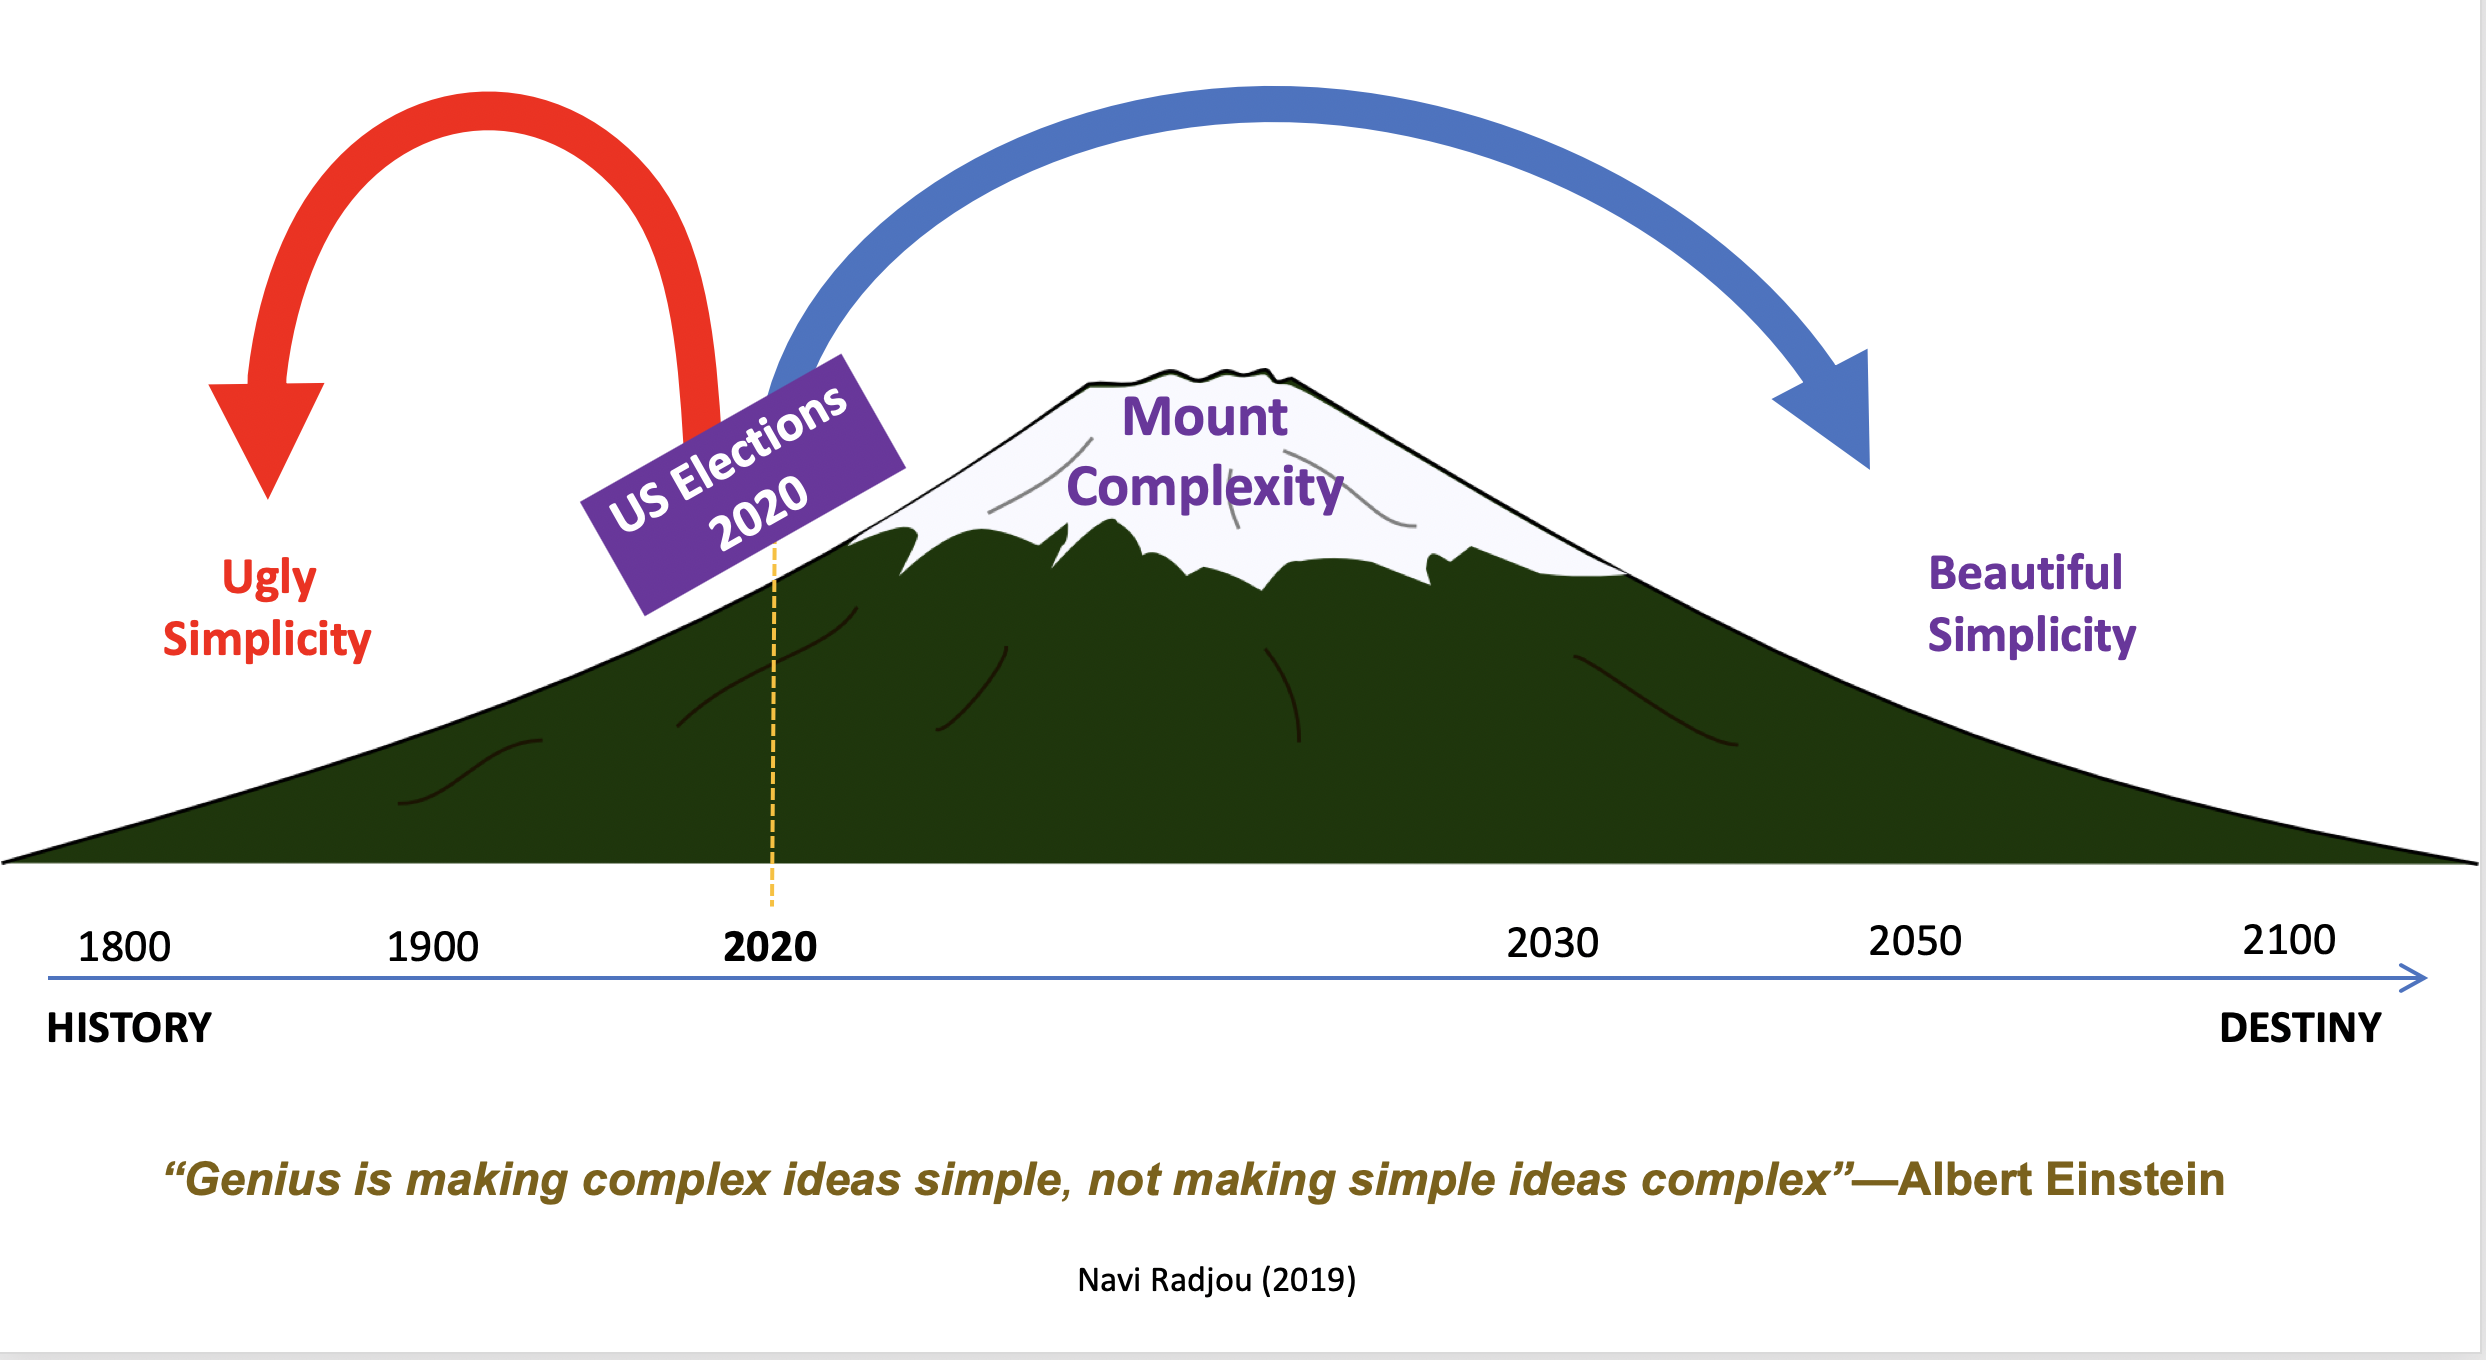 2020 is about whether we want ugly simplicity or beautiful simplicity in our lives